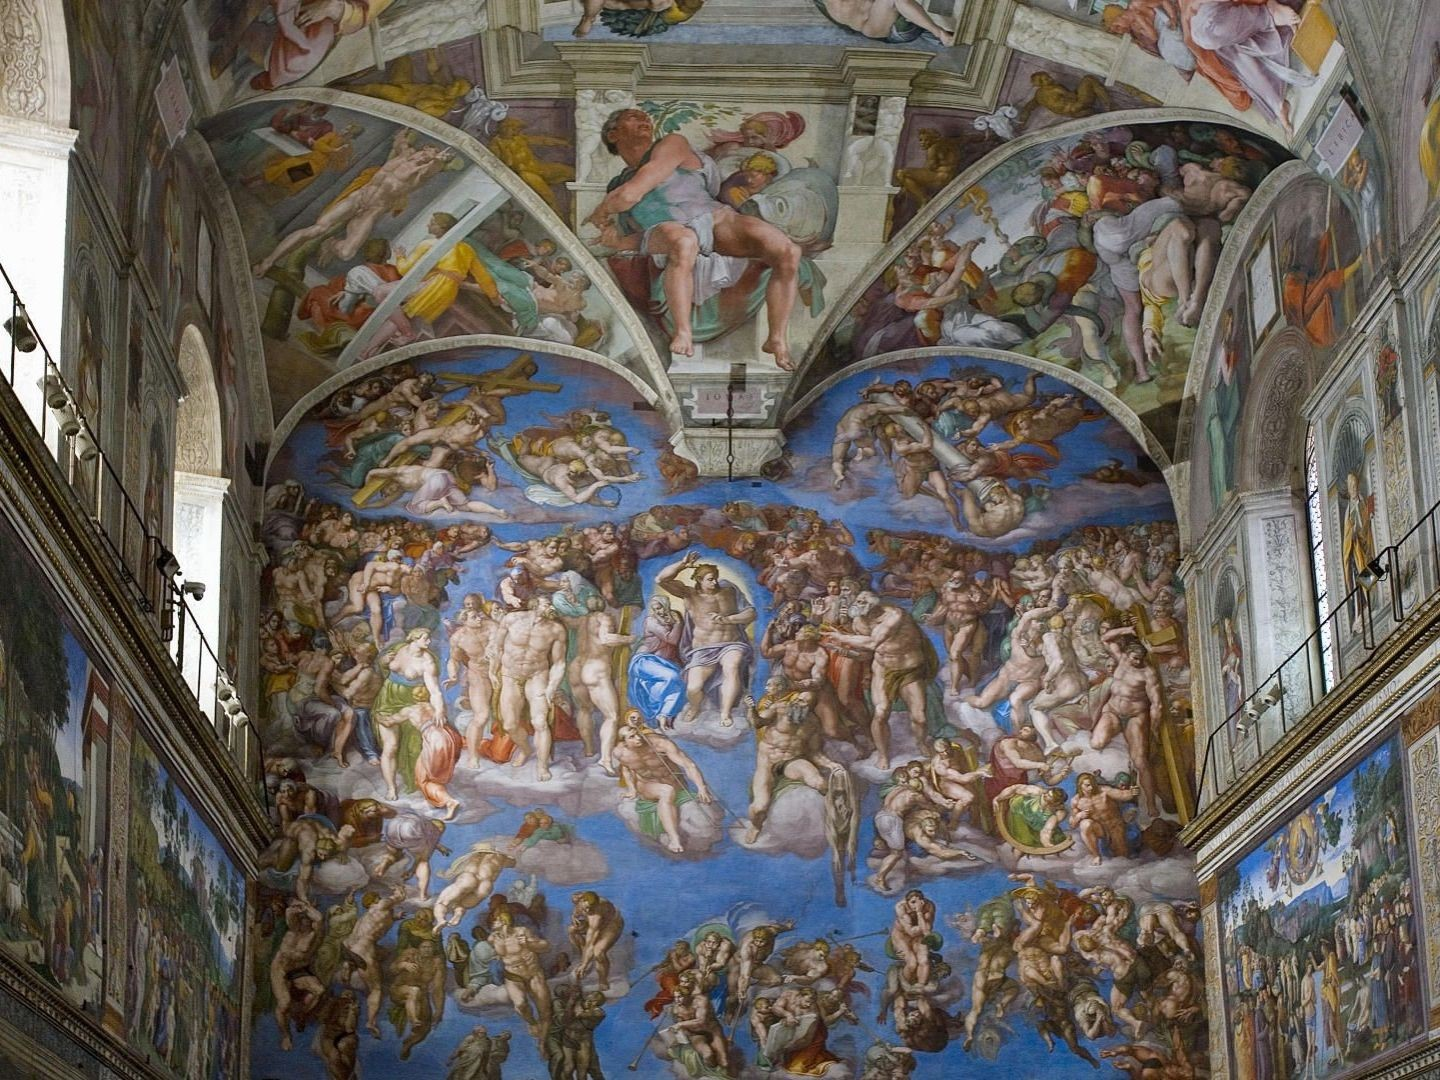 The Sistine Chapel, The Vatican City Museum, Italy